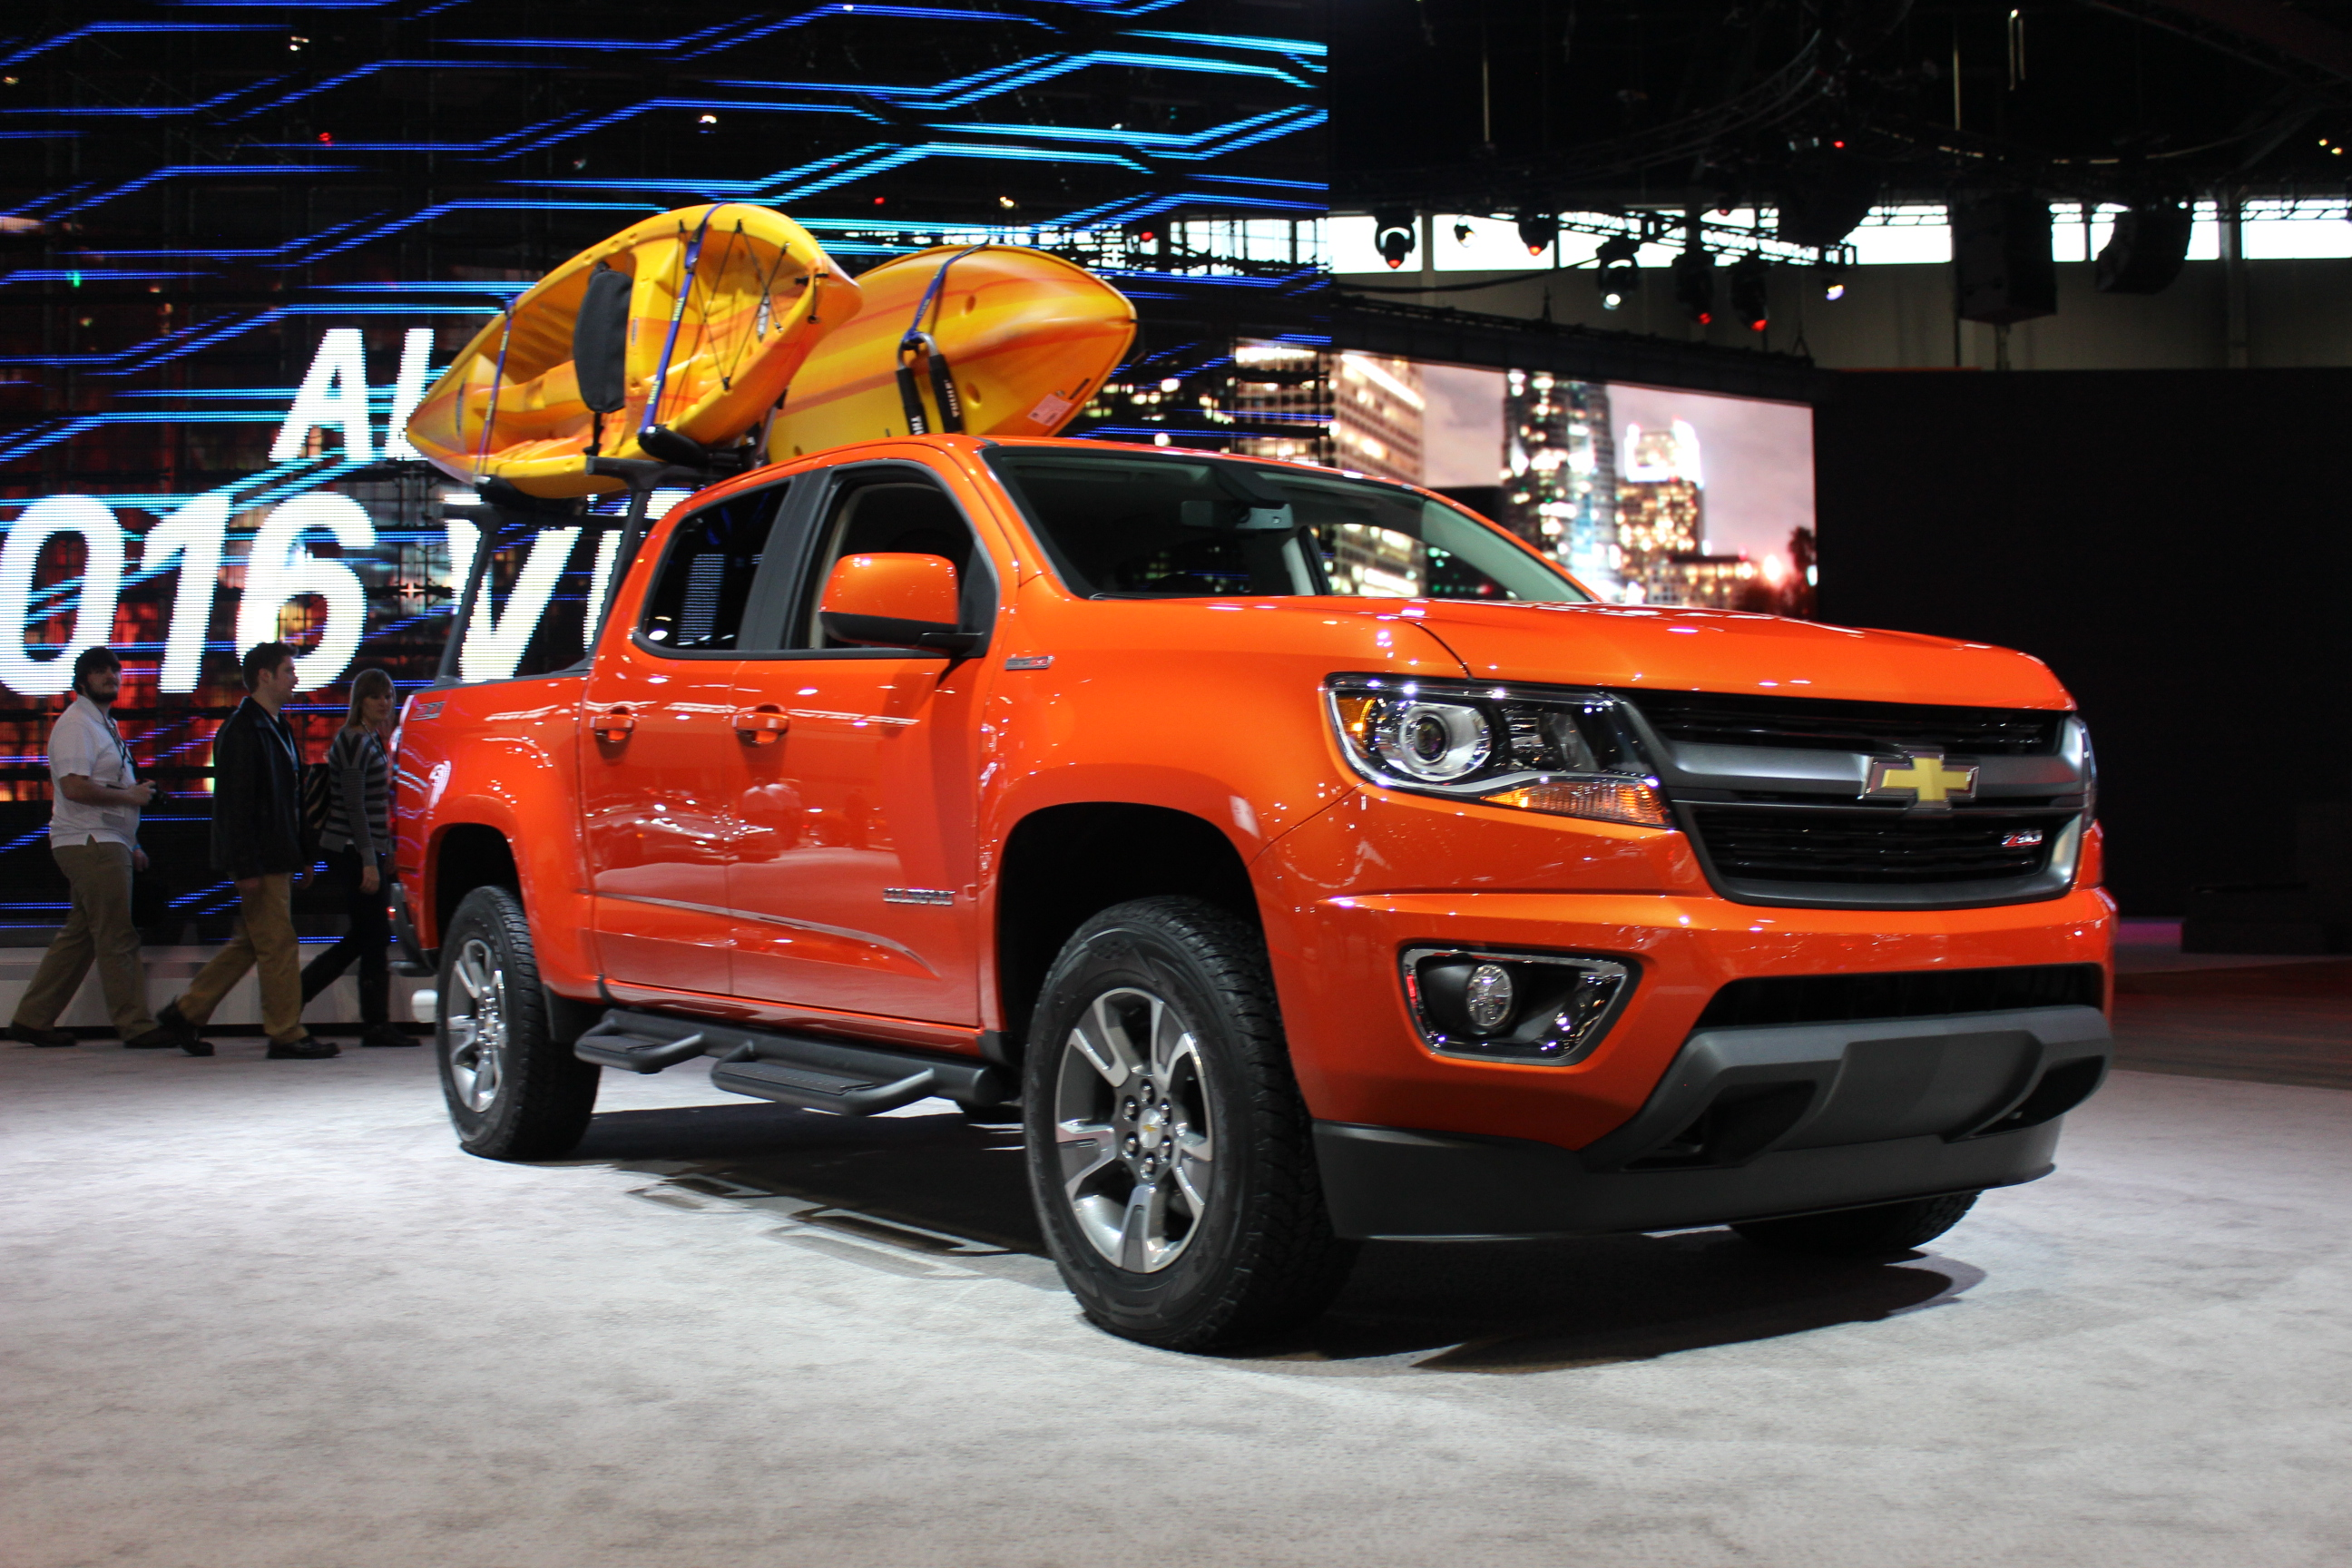 Smaller Chevy Colorado Pickup A Hit: Plant Adds 3rd Shift ...